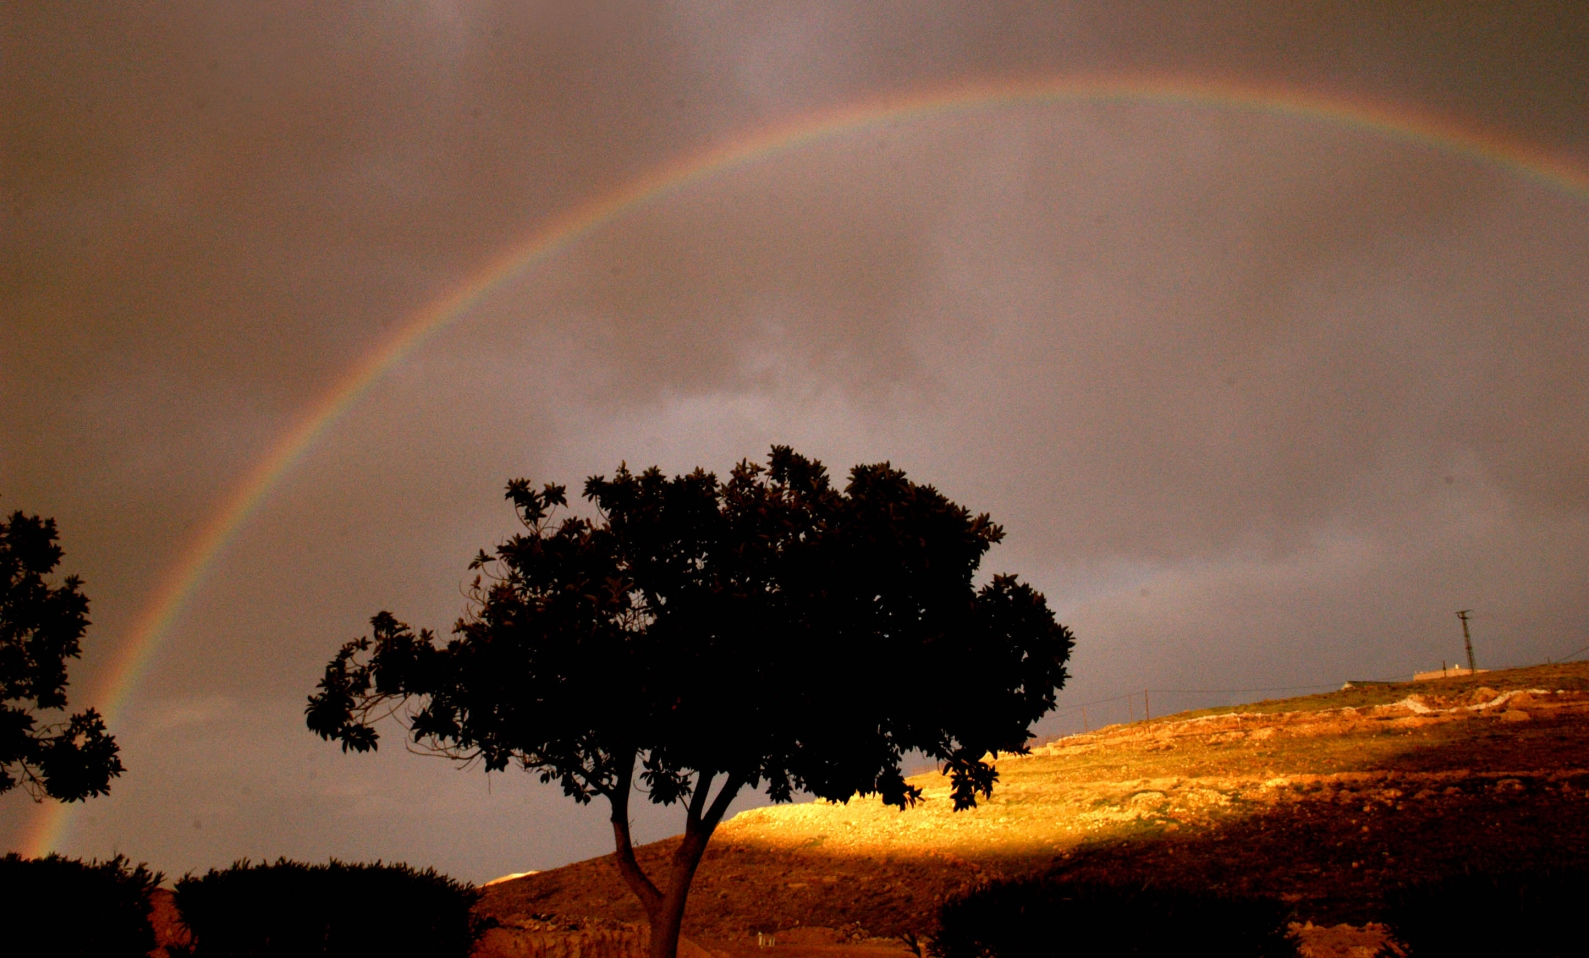 A rainbow in the Judean Desert. Photo by Yossi Zamir/FLASH90